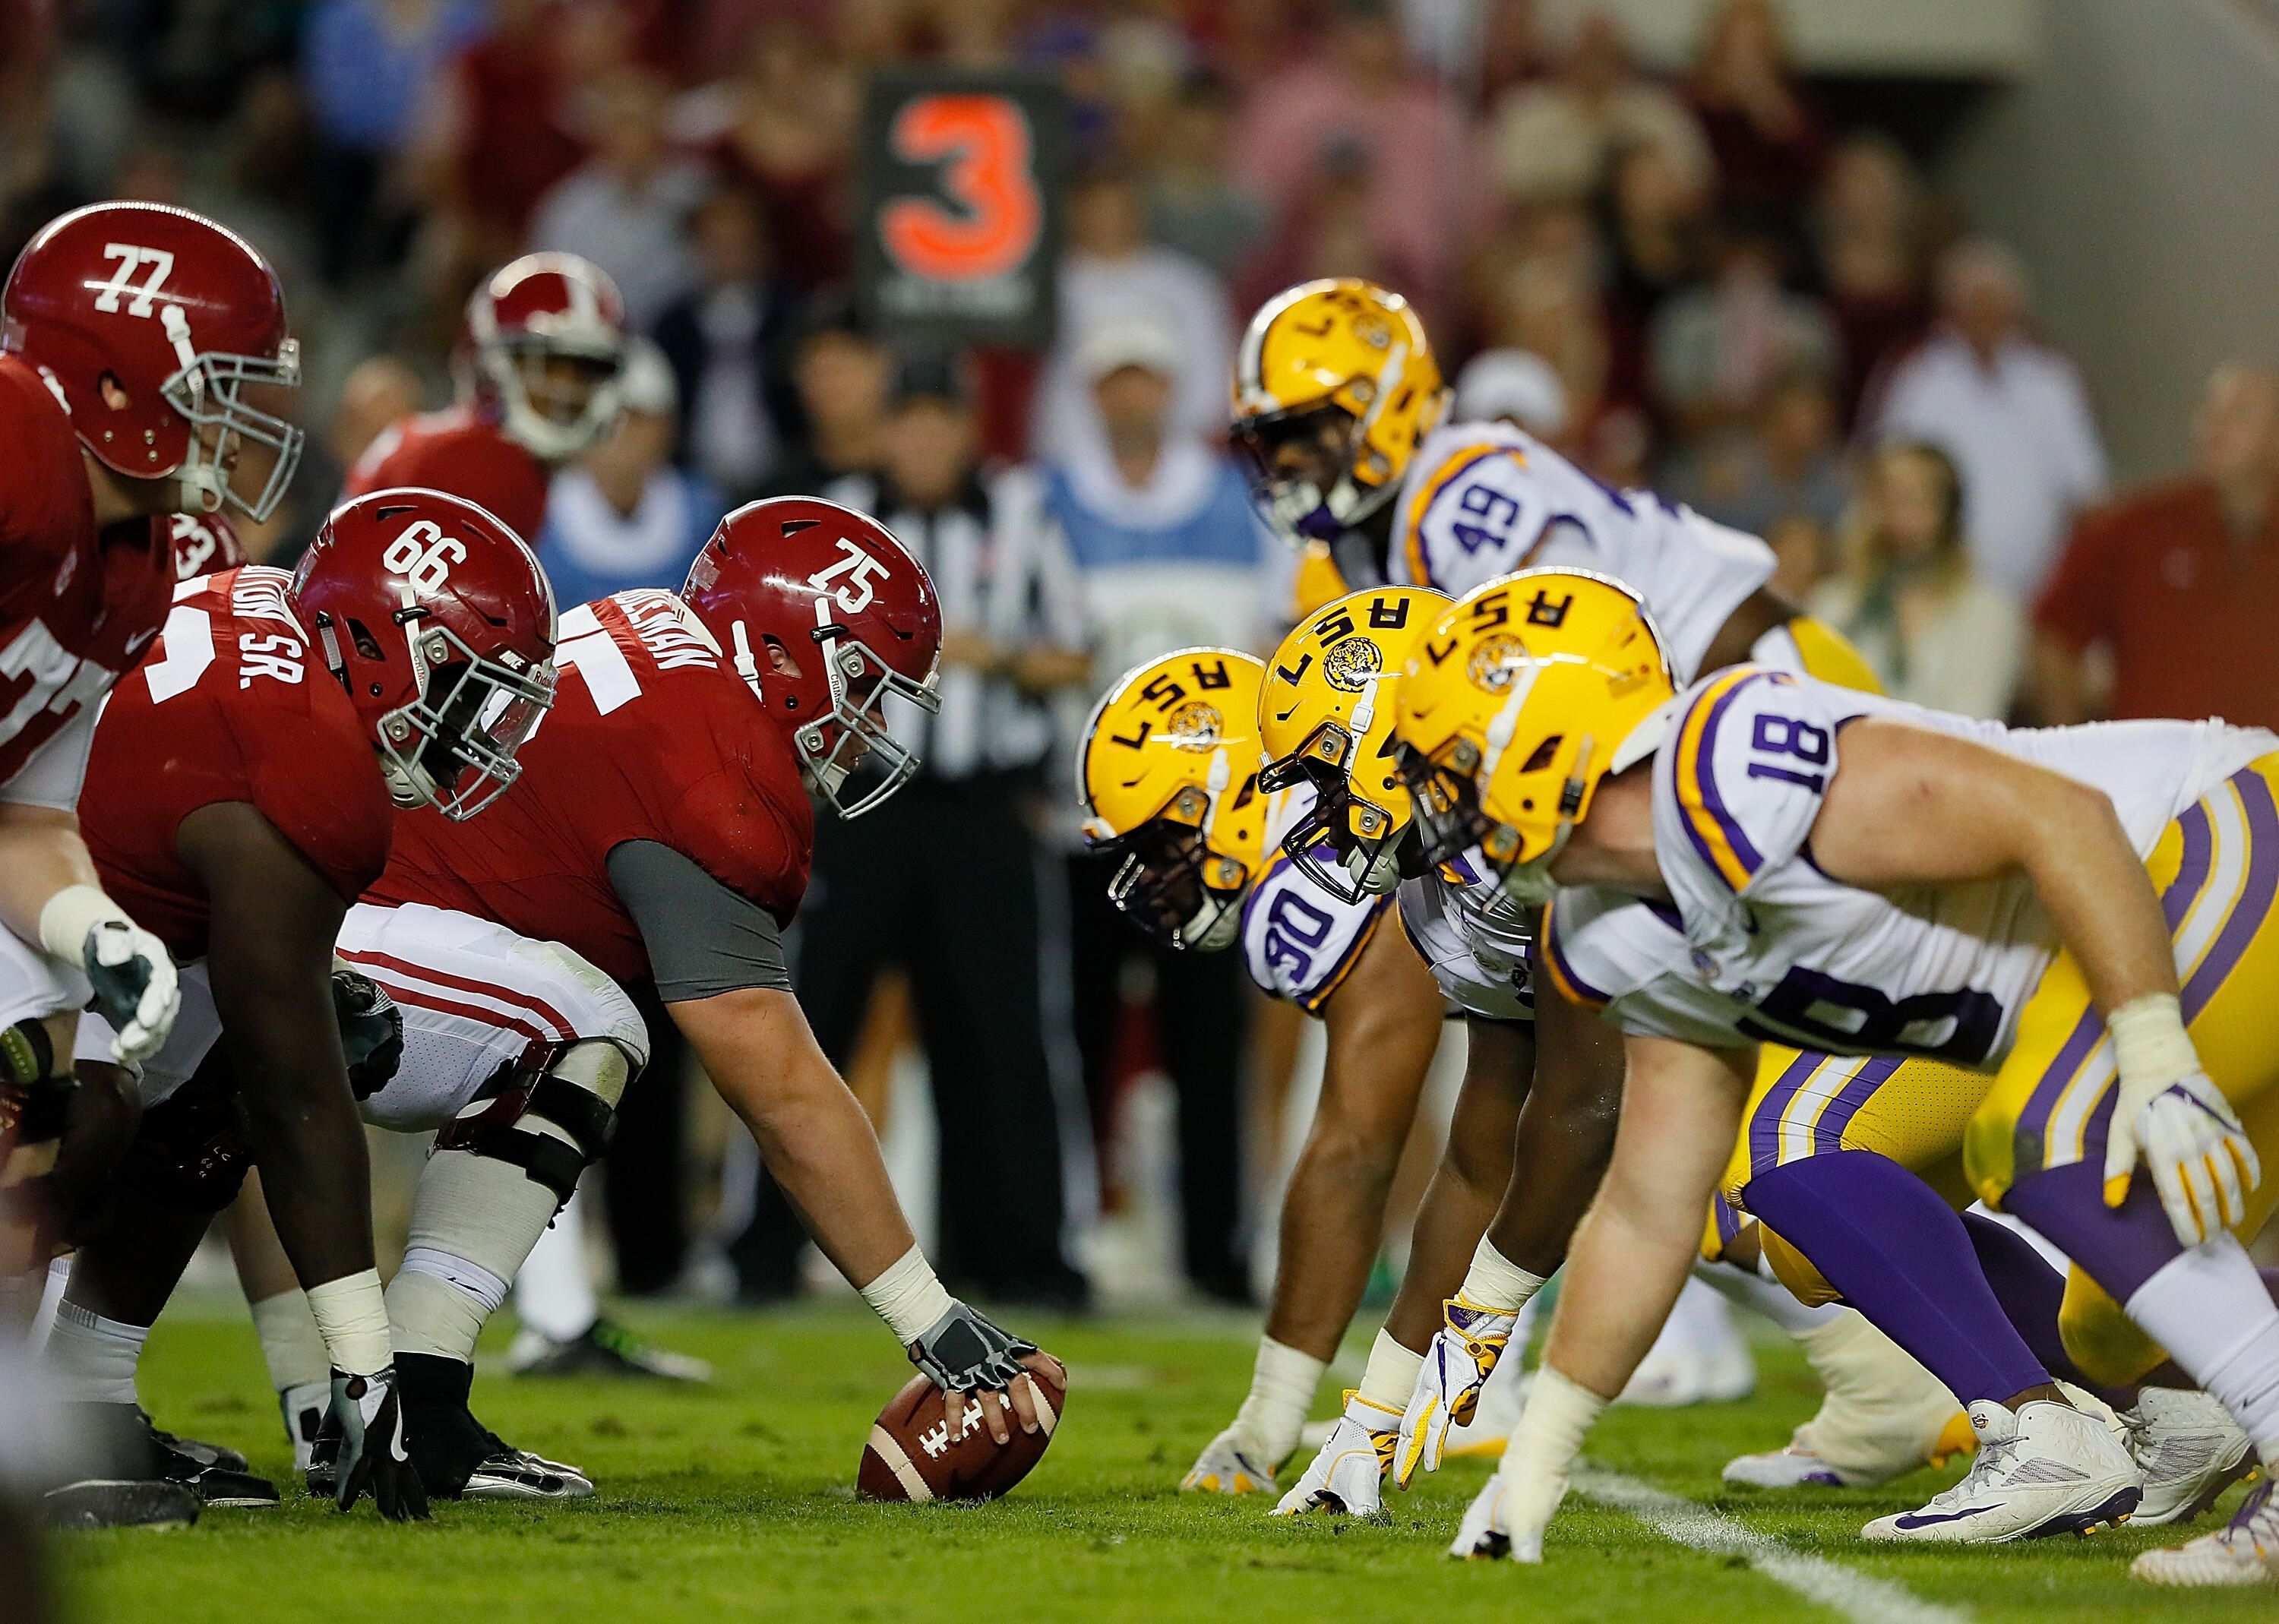 How to watch the alabama vs lsu game without cable